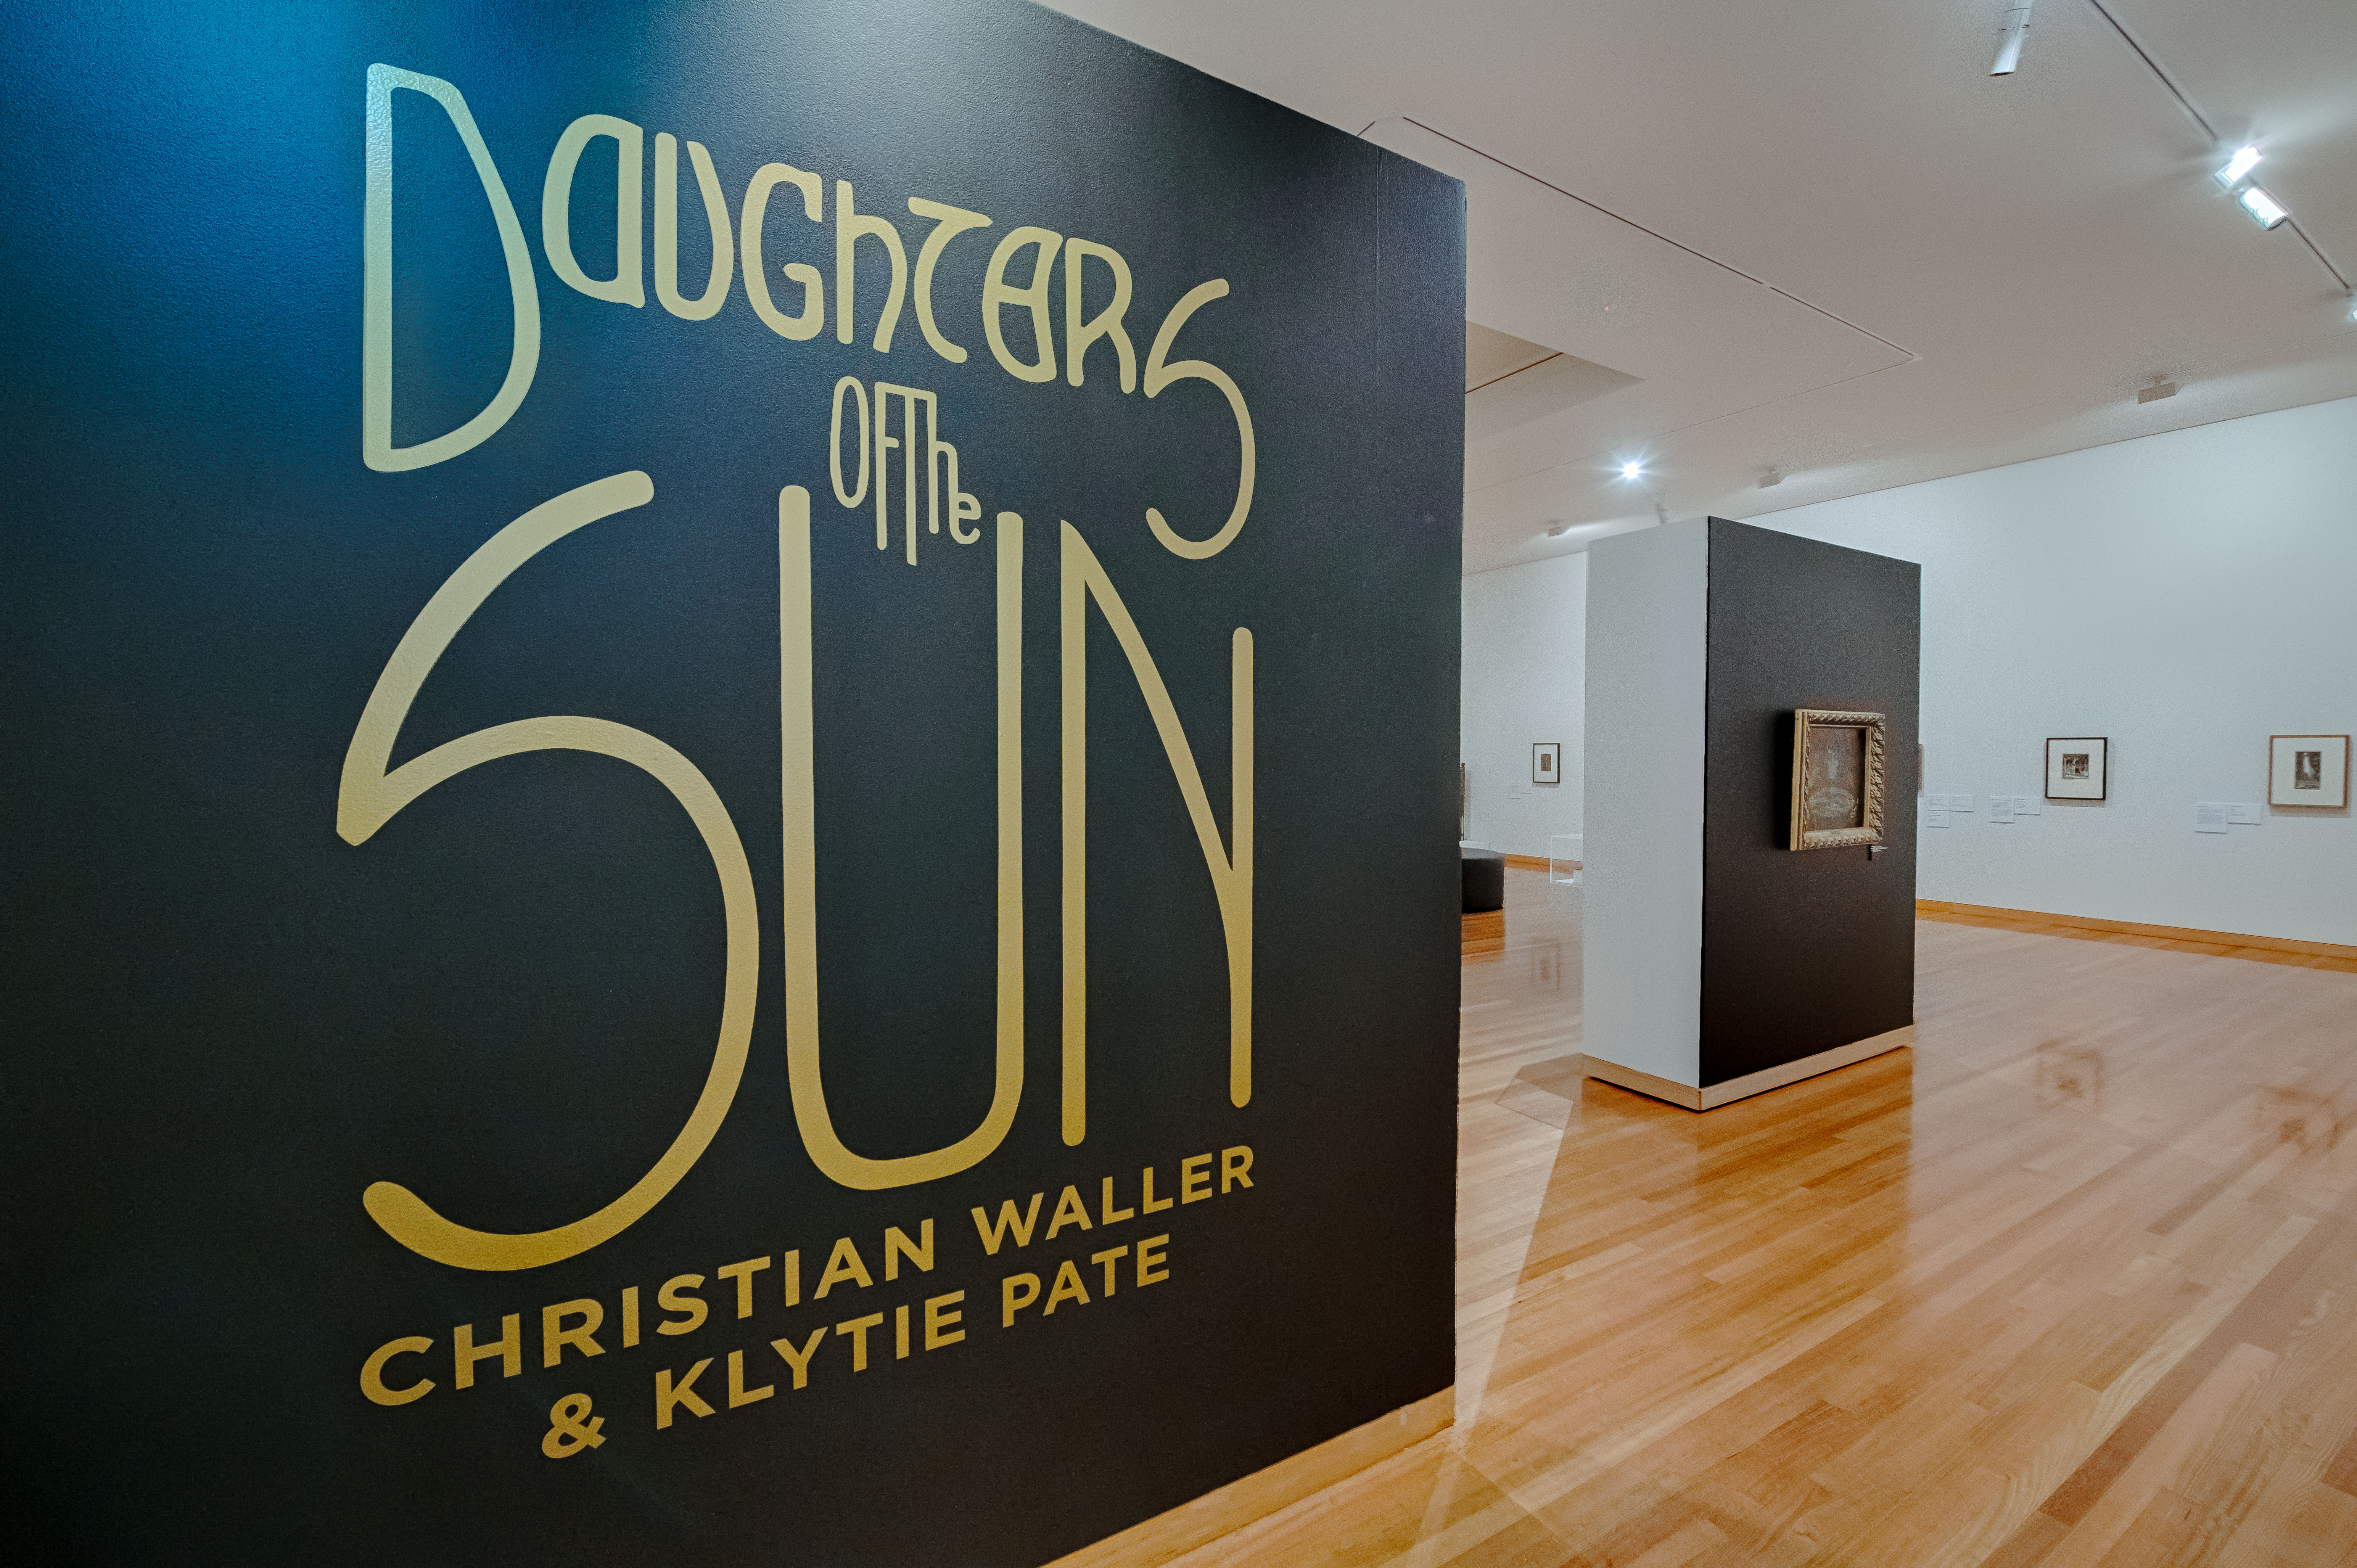 Daughters of the Sun exhibition